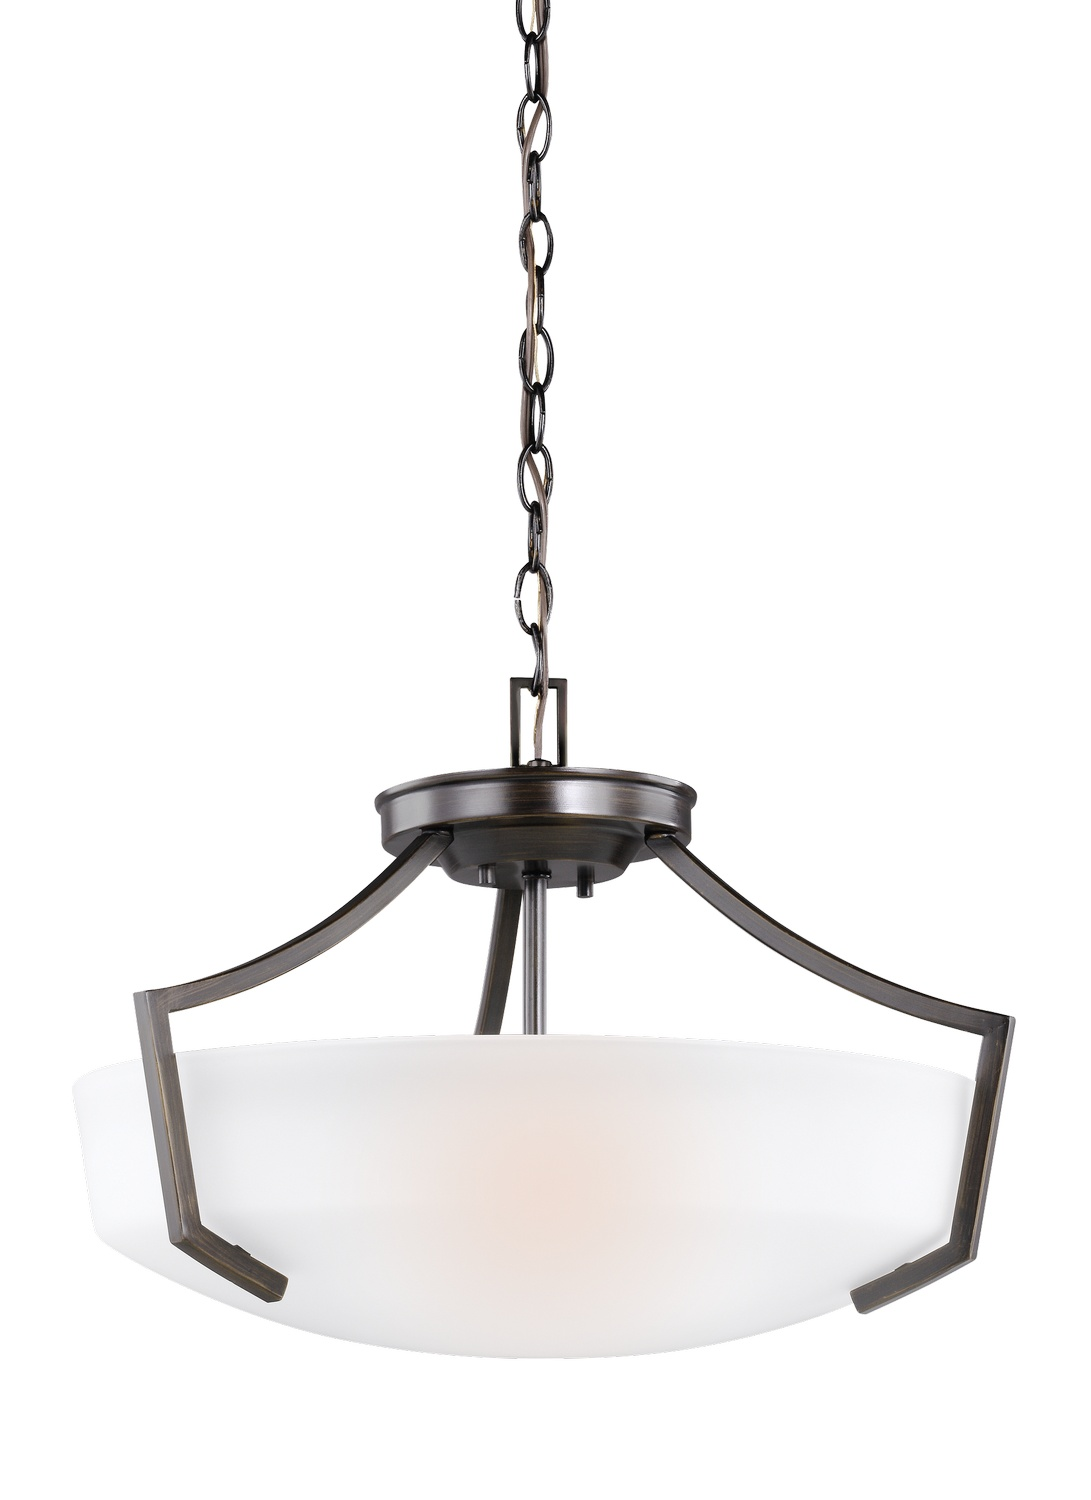 Three Light Ceiling Convertible Pendant